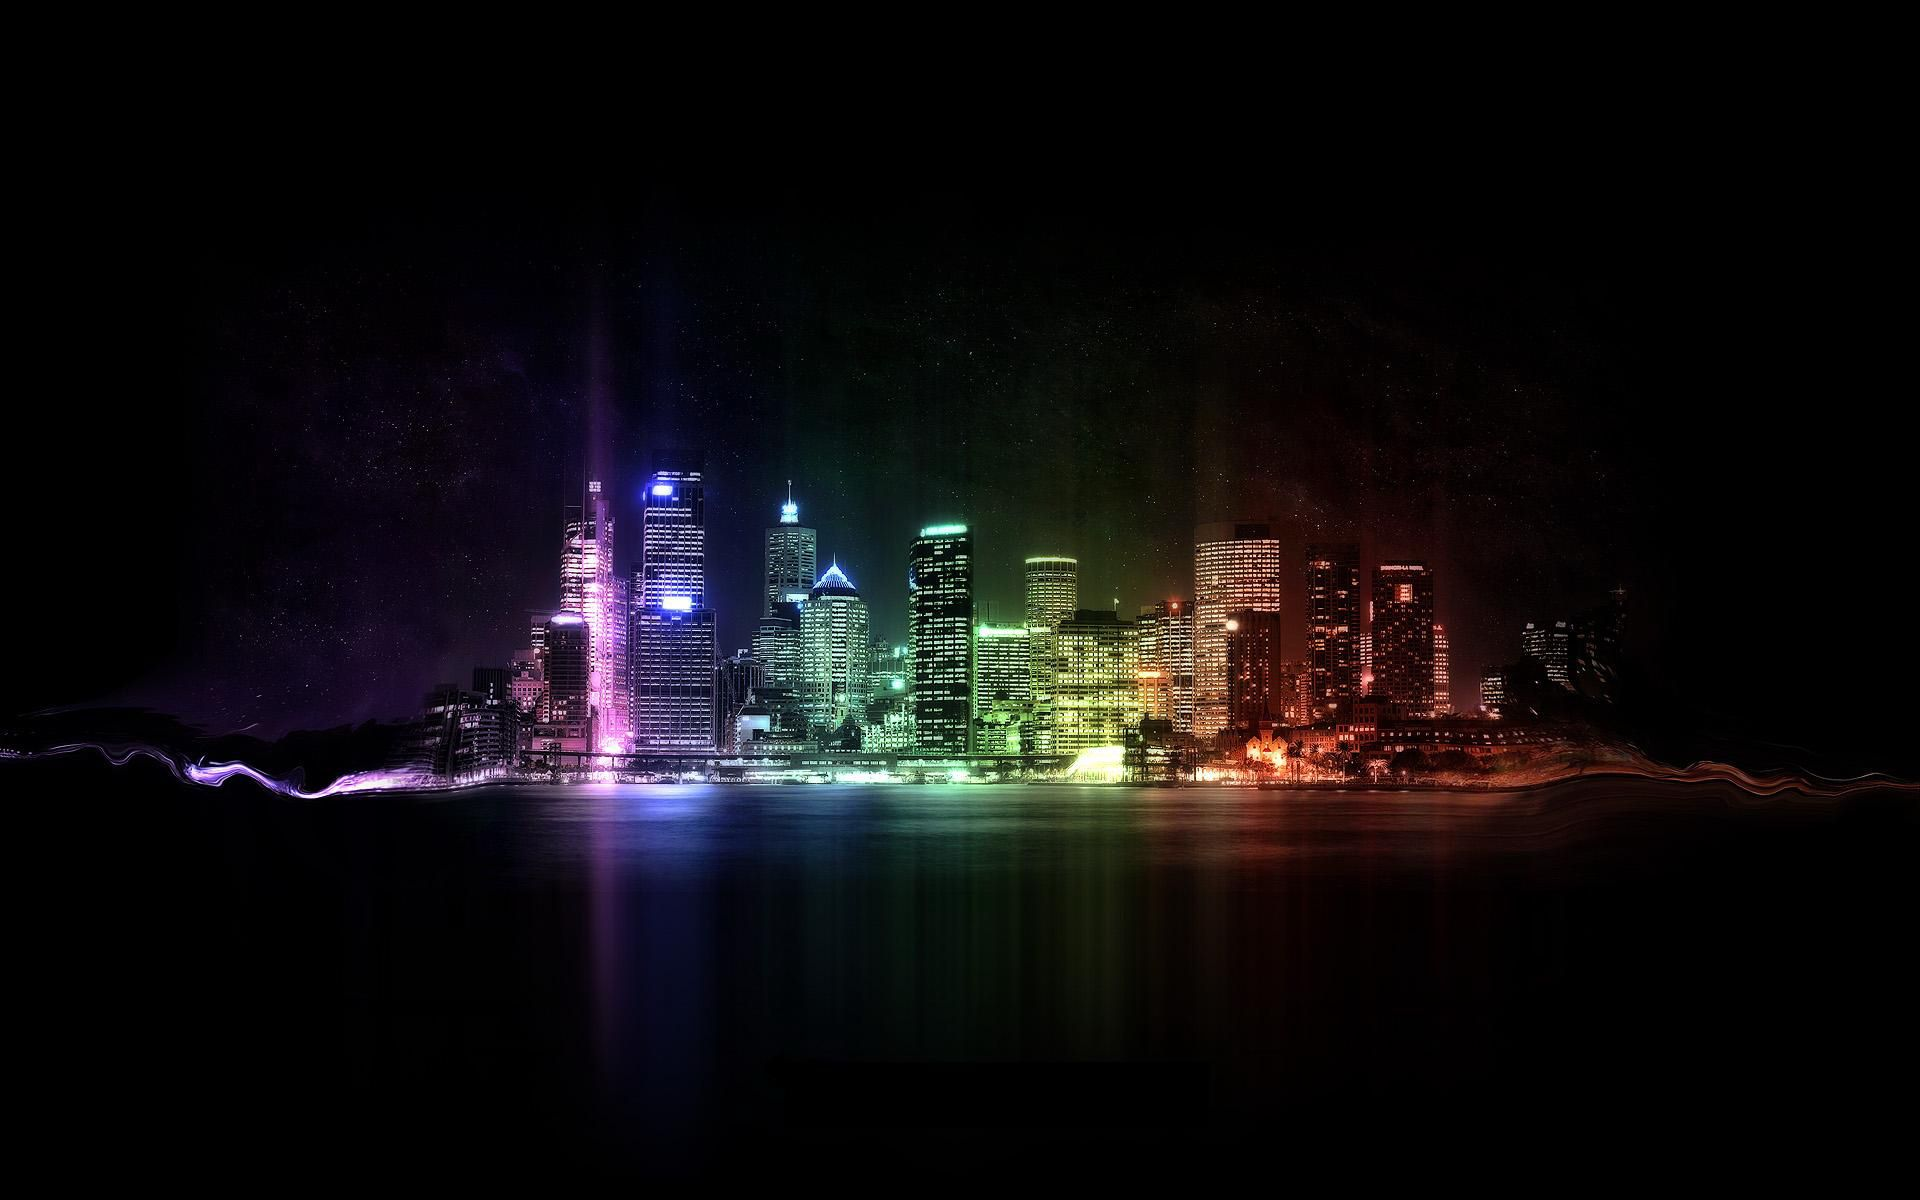 Black City Light Night X Hd Wallpaper | LIGHT BRIGHT _BRIGHT LIGHT ...:Black City Light Night X Hd Wallpaper,Lighting